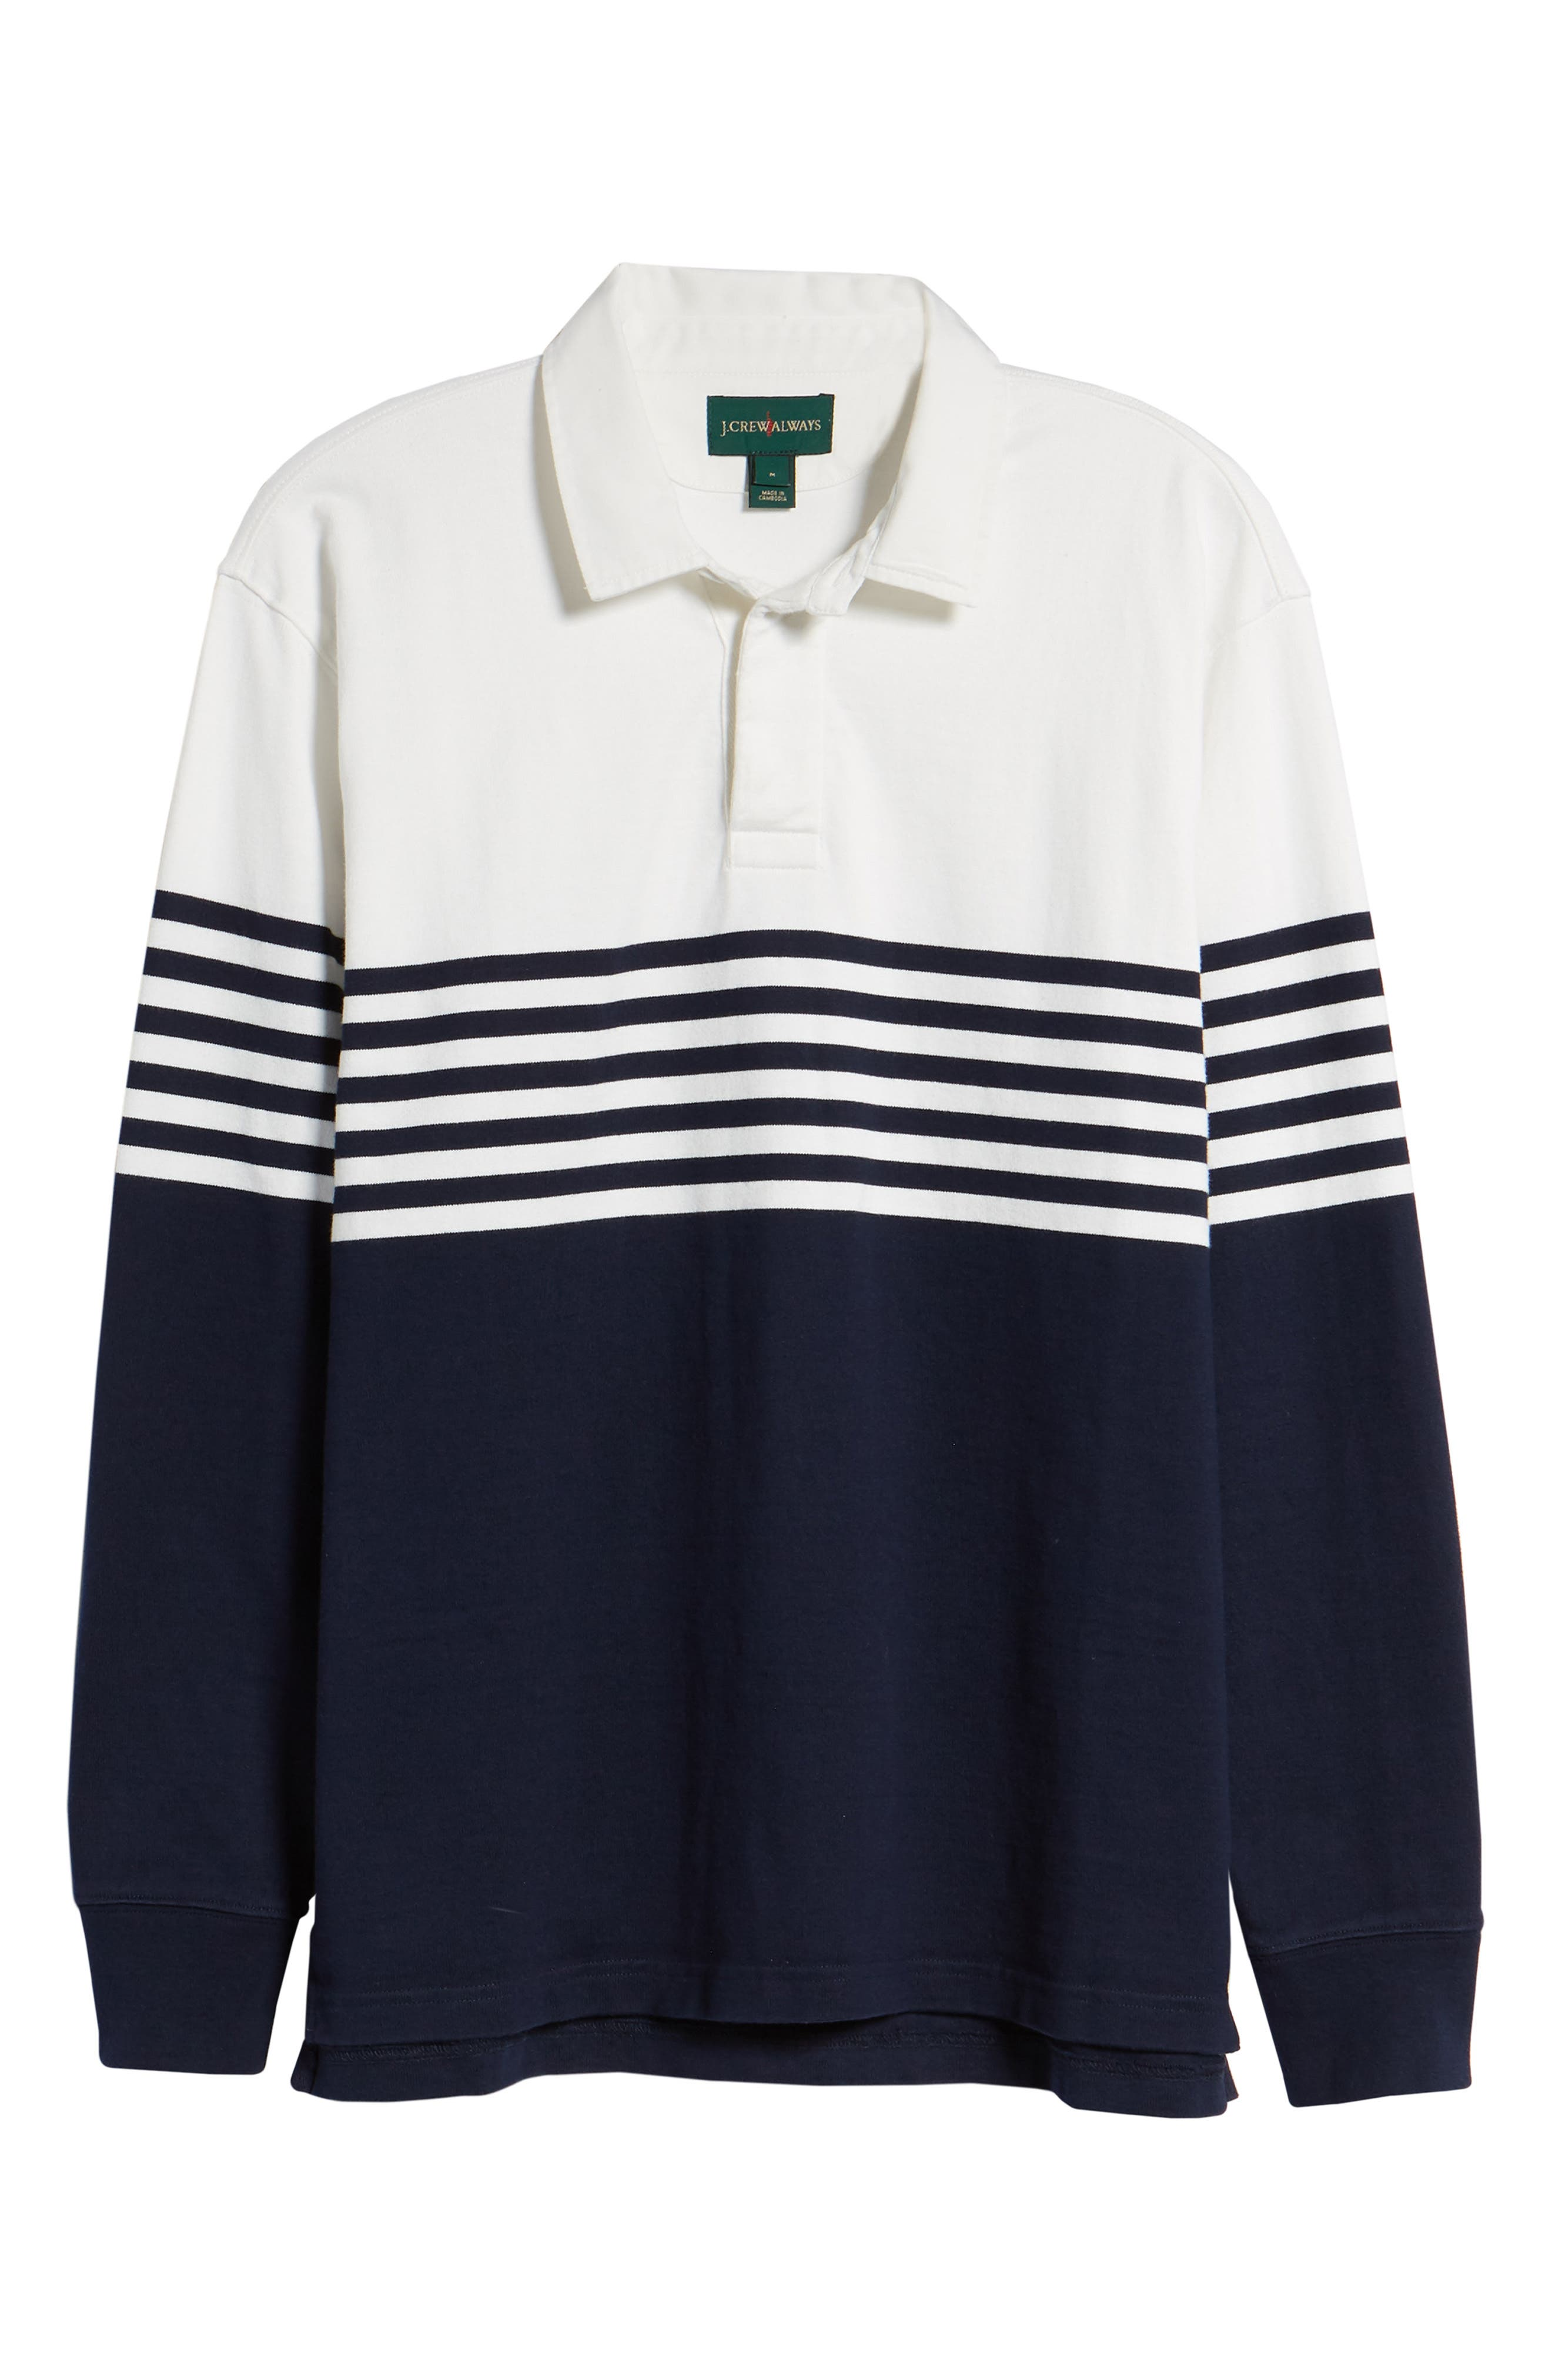 1984 Colorblock Stripe Rugby Shirt,                             Alternate thumbnail 6, color,                             Navy White